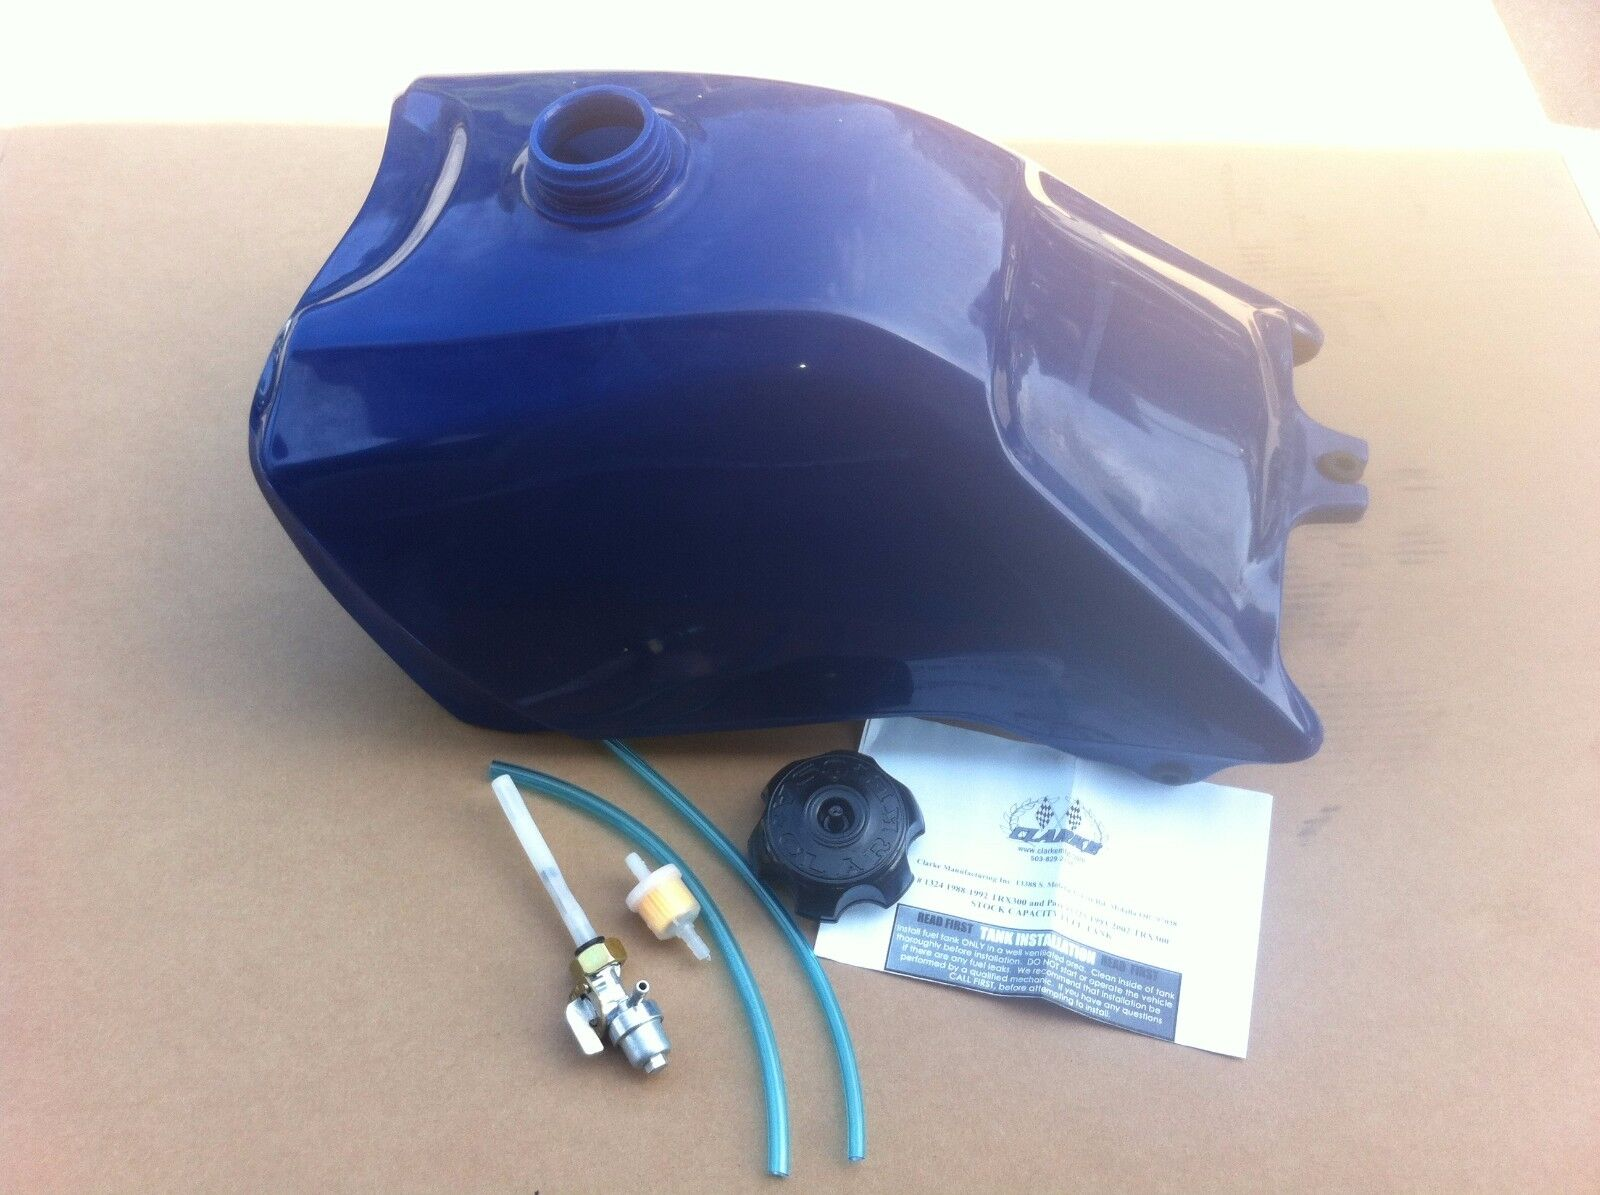 HONDA TRX300 TRX 300 88-92 PLASTIC GAS FUEL TANK FOURTRAX blue with petcock